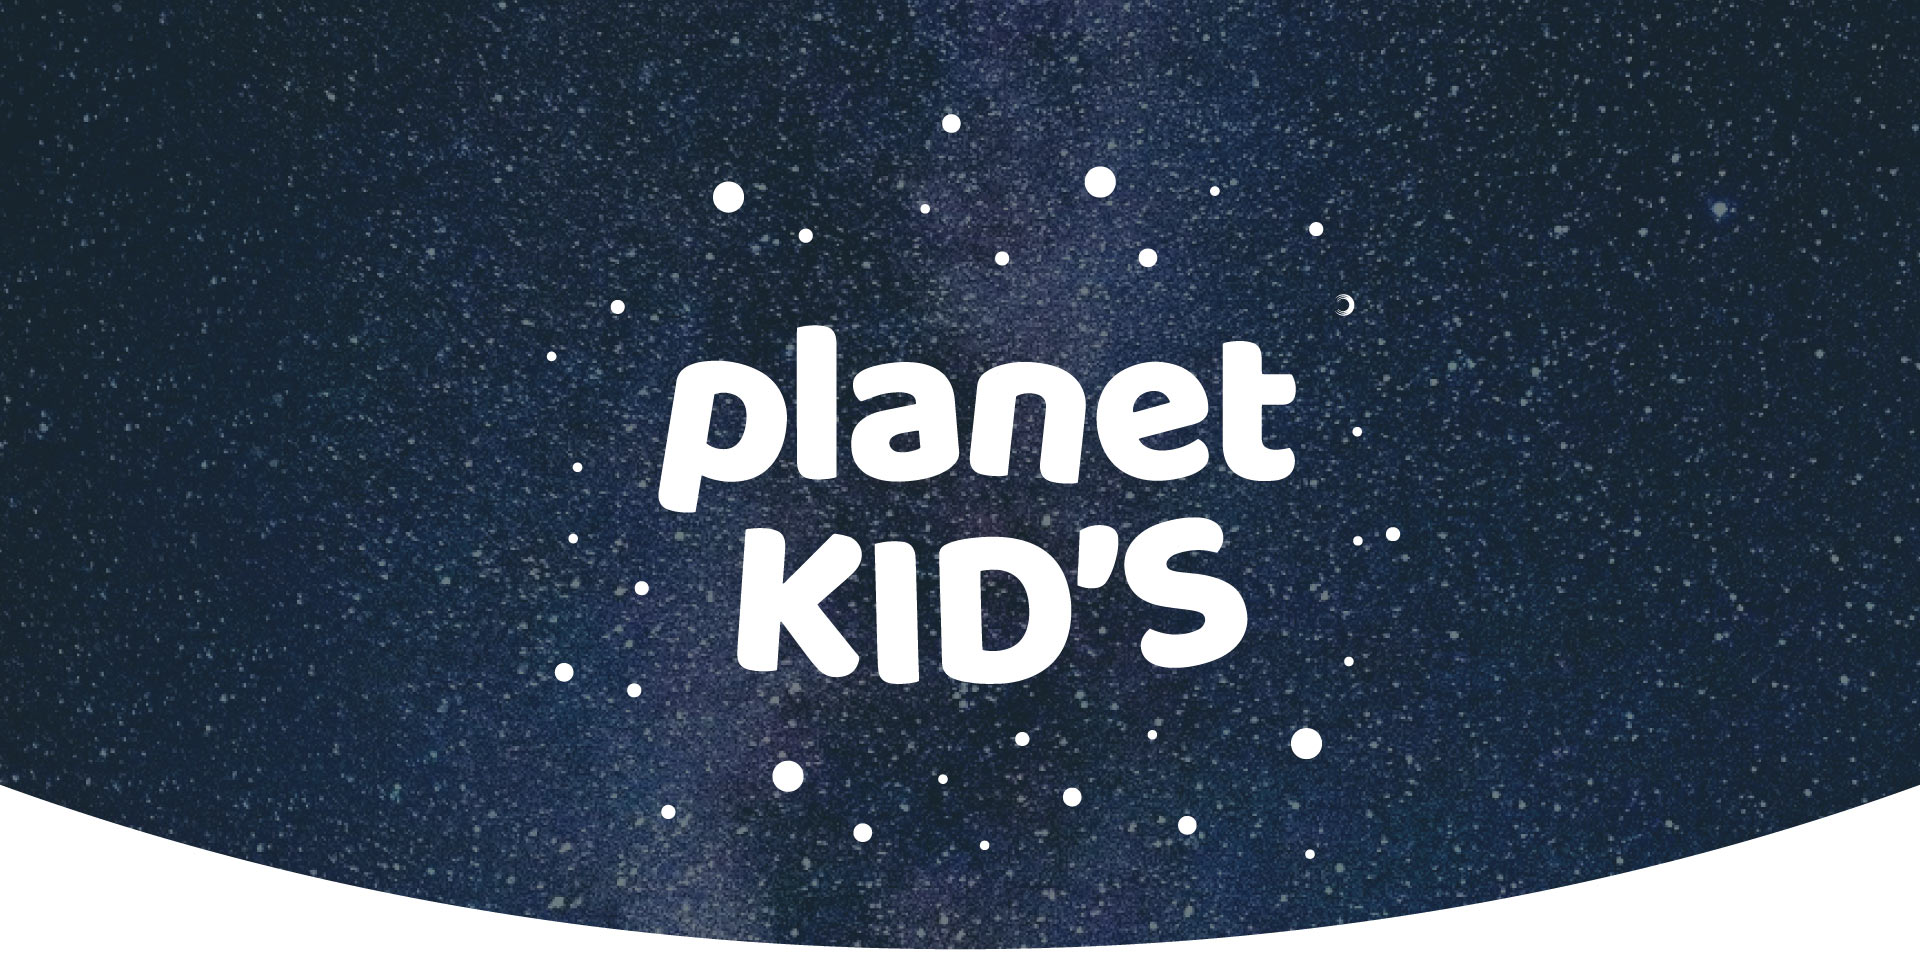 Planet kid's logo movil